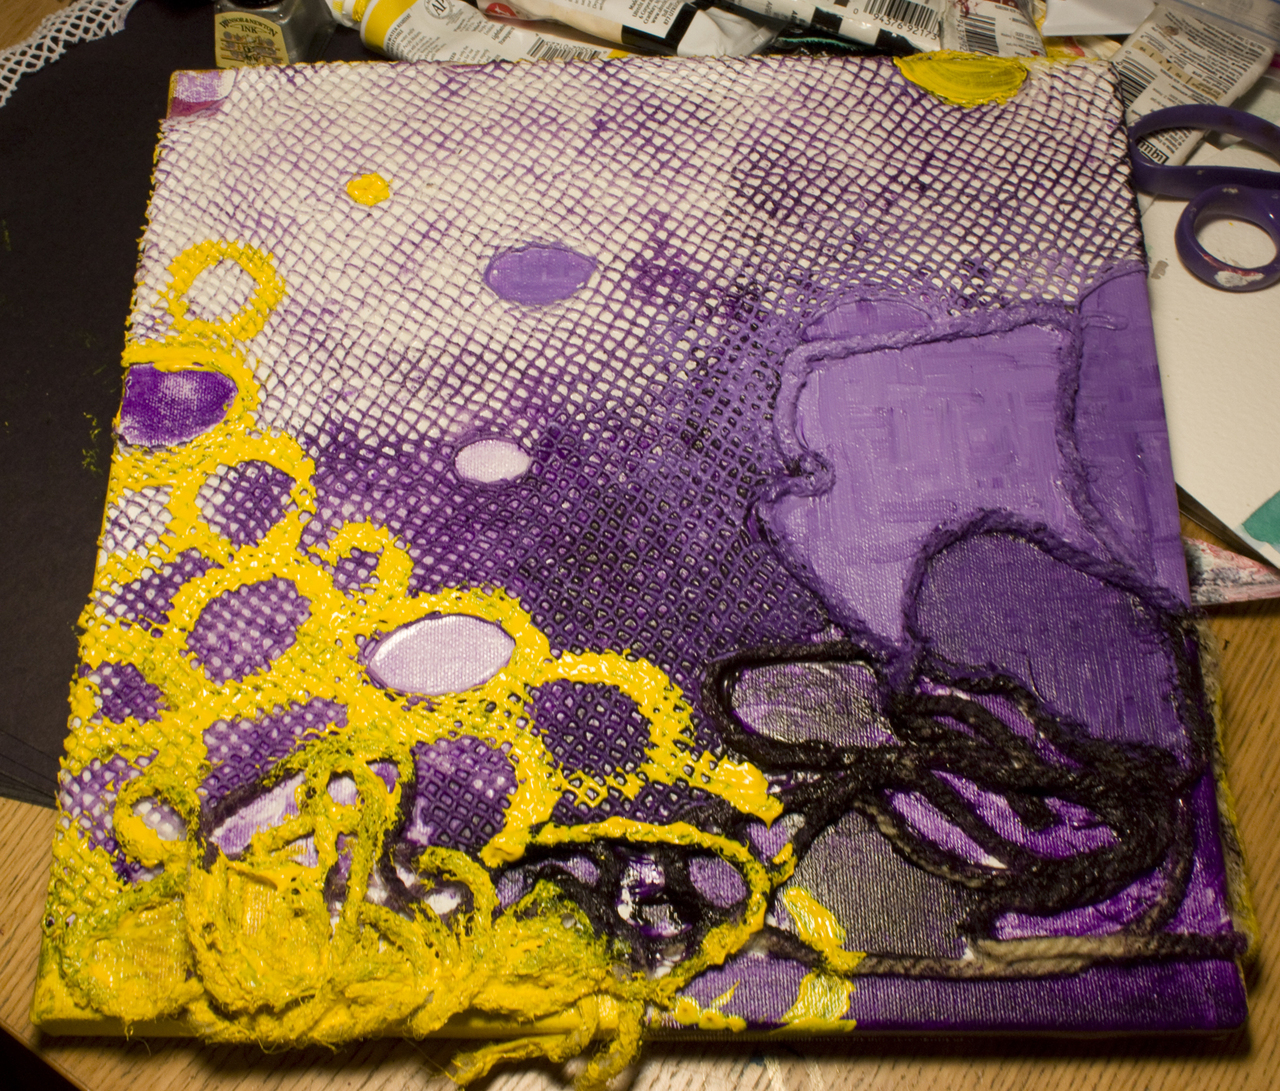 January 26-27, 2009.   Medium: Acrylic, Resin, Fabric and String on Canvas.